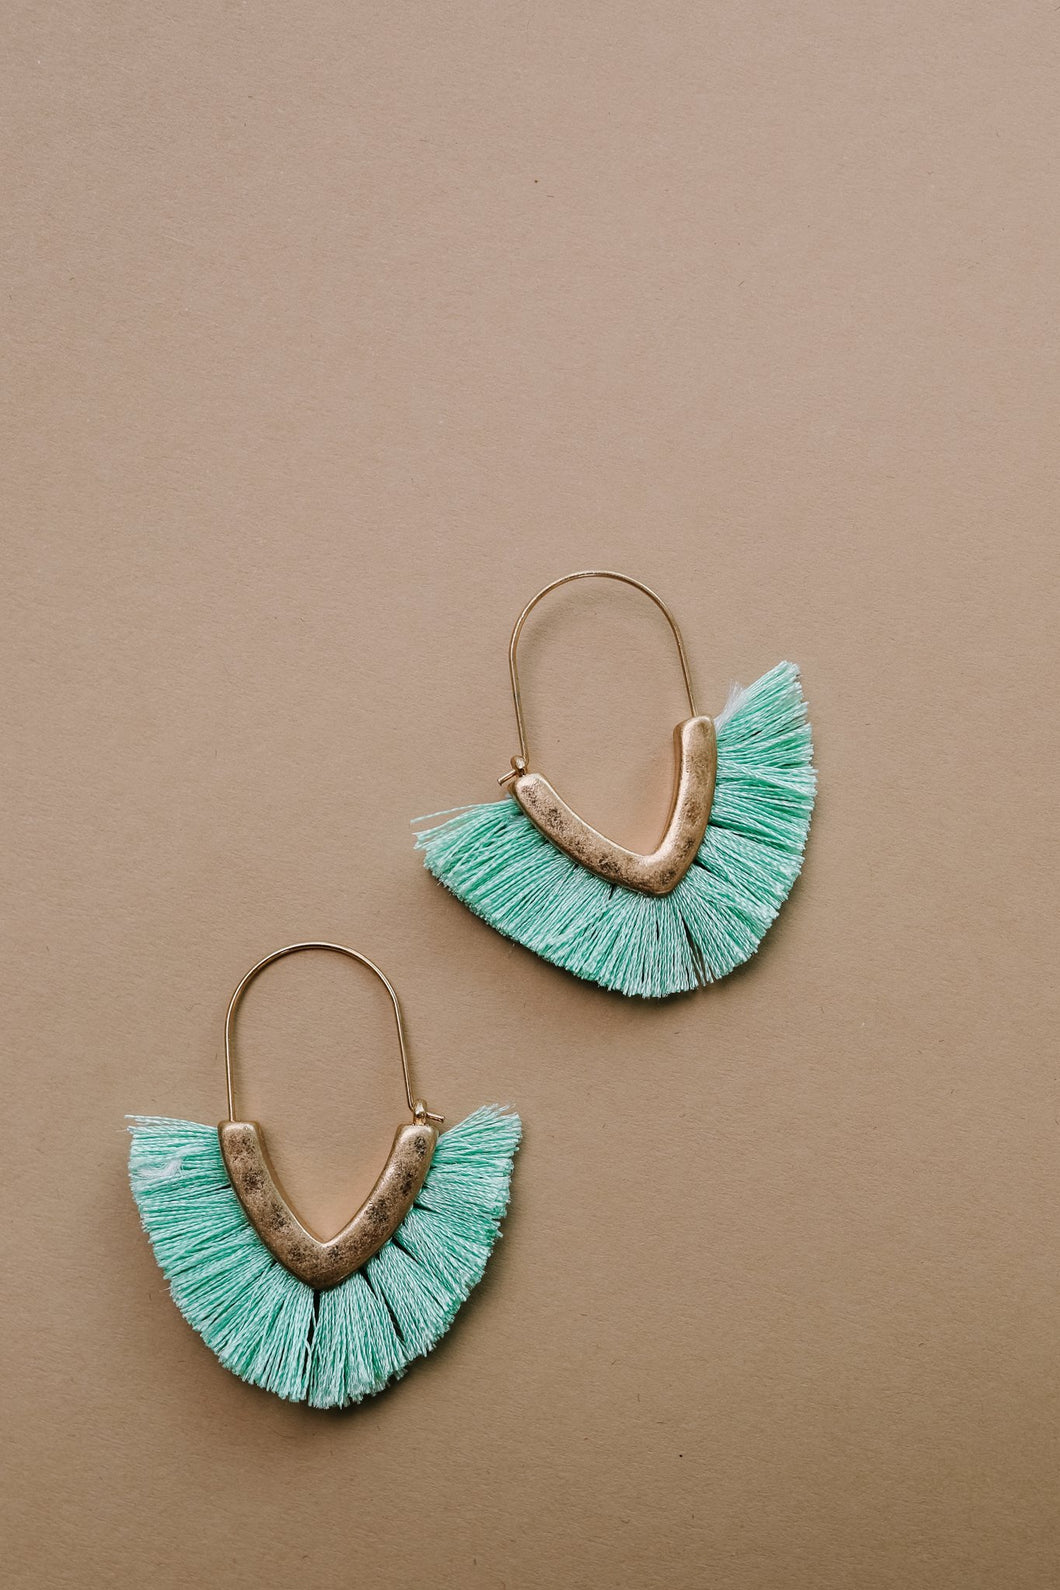 Tasseled V Earrings In MINT - Smith & Vena Online Boutique